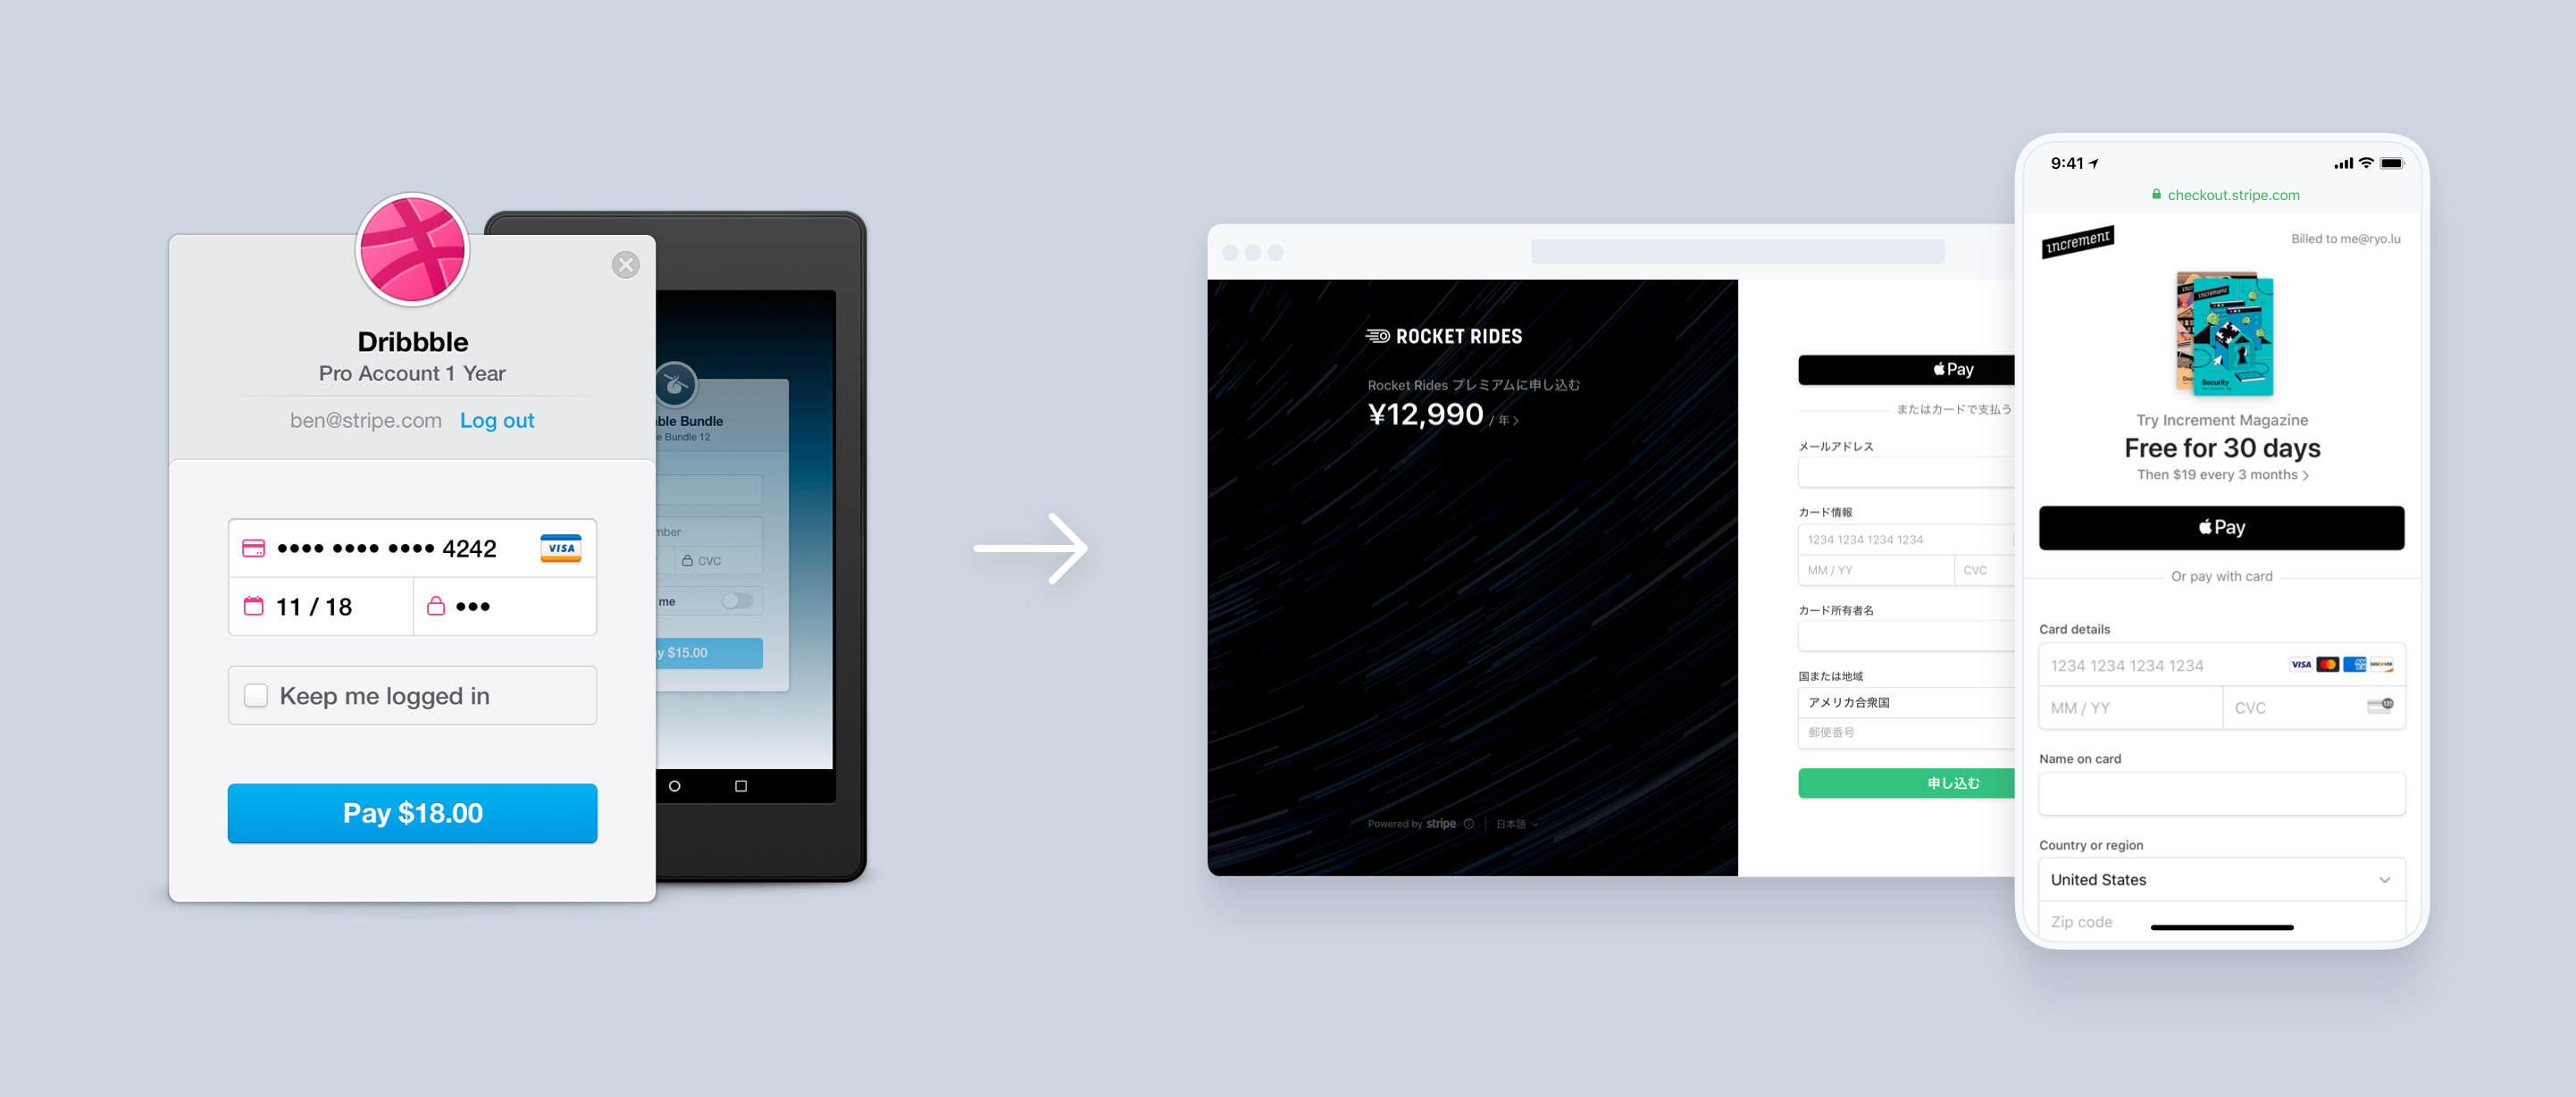 Comparison of old checkout, which was a modal appearing on top of our invoice / listing pages, and new checkout which is hosted on stripe.com.